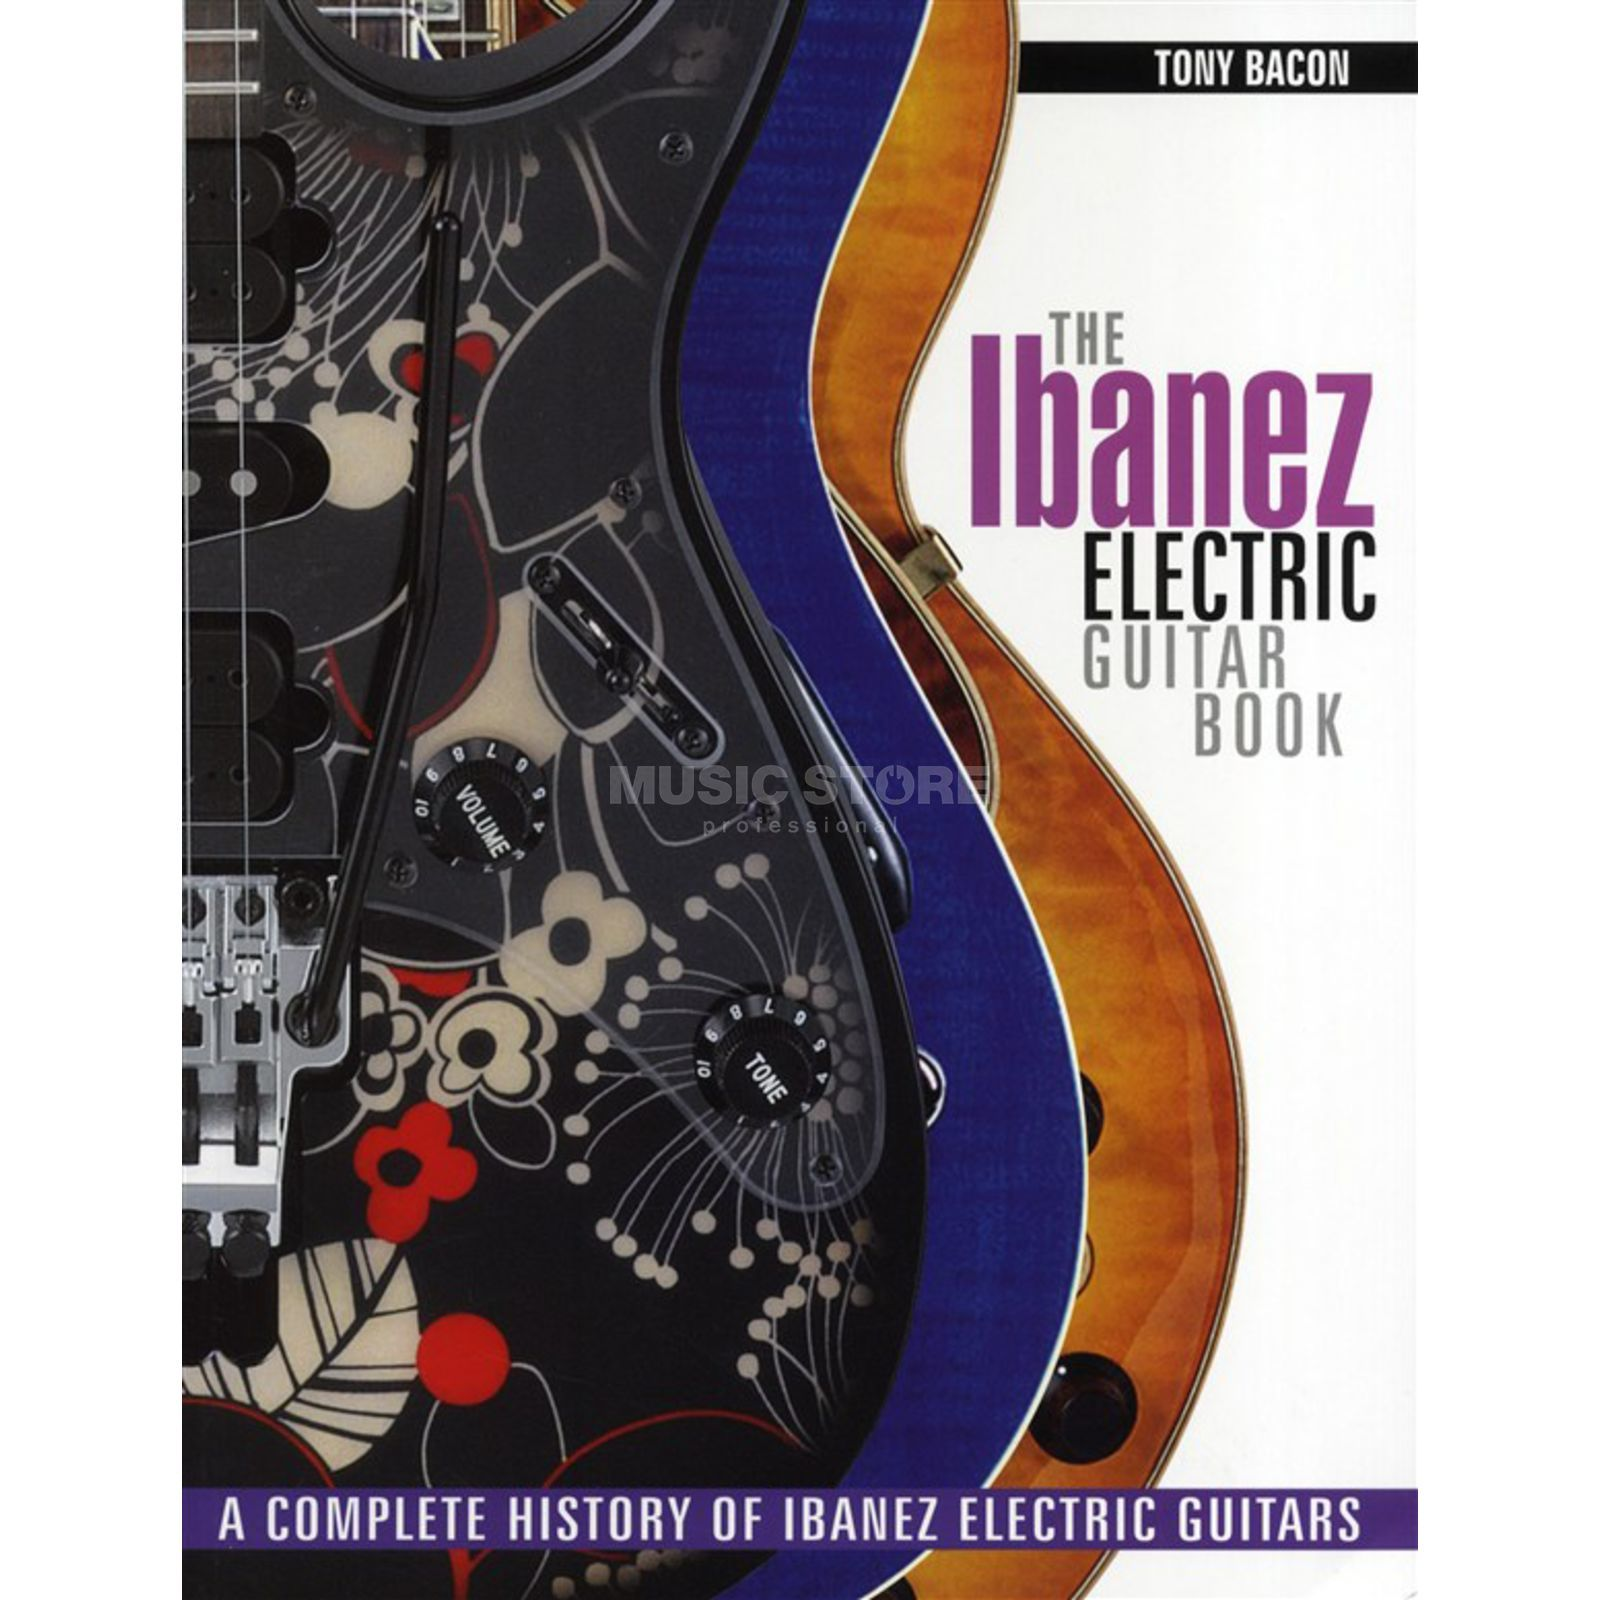 Hal Leonard Ibanez Electric Guitar Book Tony Bacon Produktbild